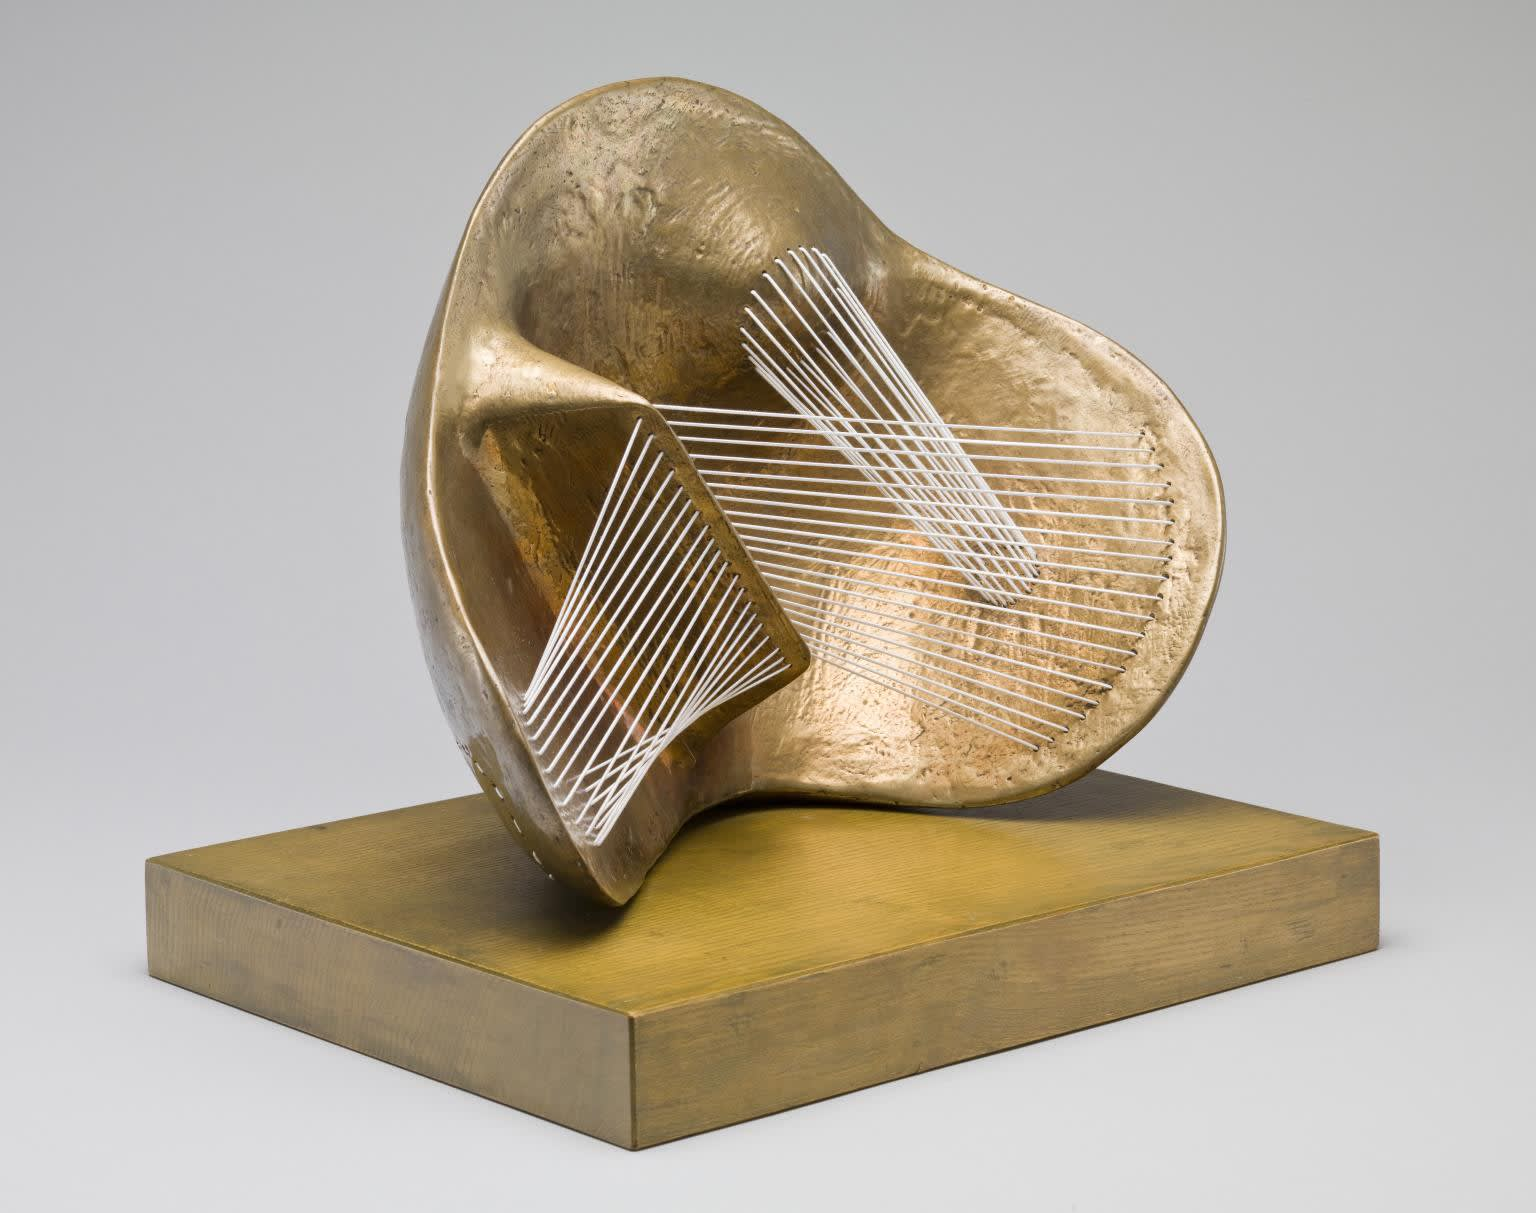 Henry Moore OM, CH, Stringed Figure 1938, cast 1960 © The Henry Moore Foundation. All Rights Reserved